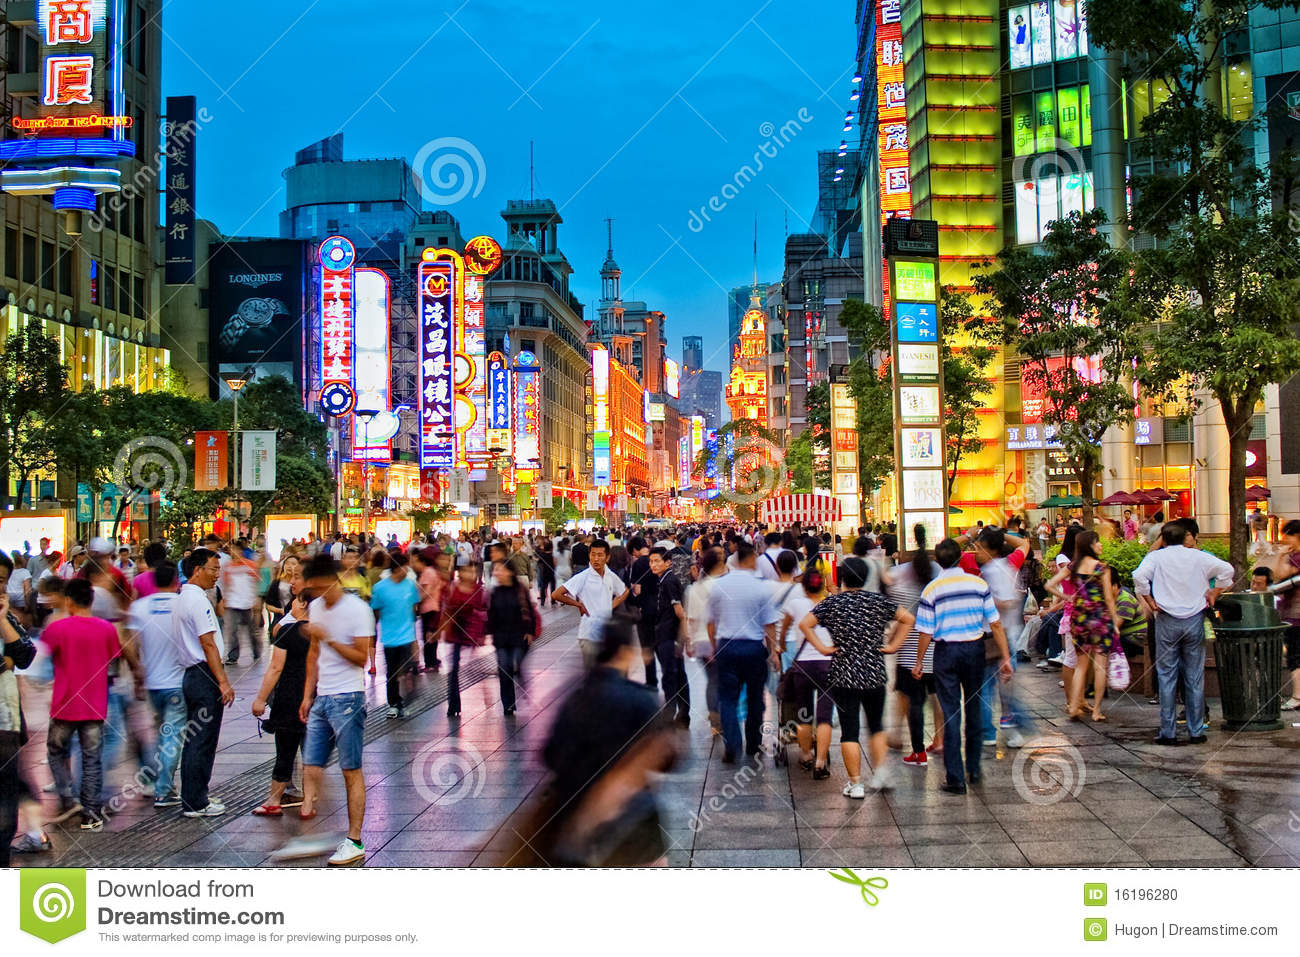 Street view of west nanjing road, shanghai as seen in Jun 2010.